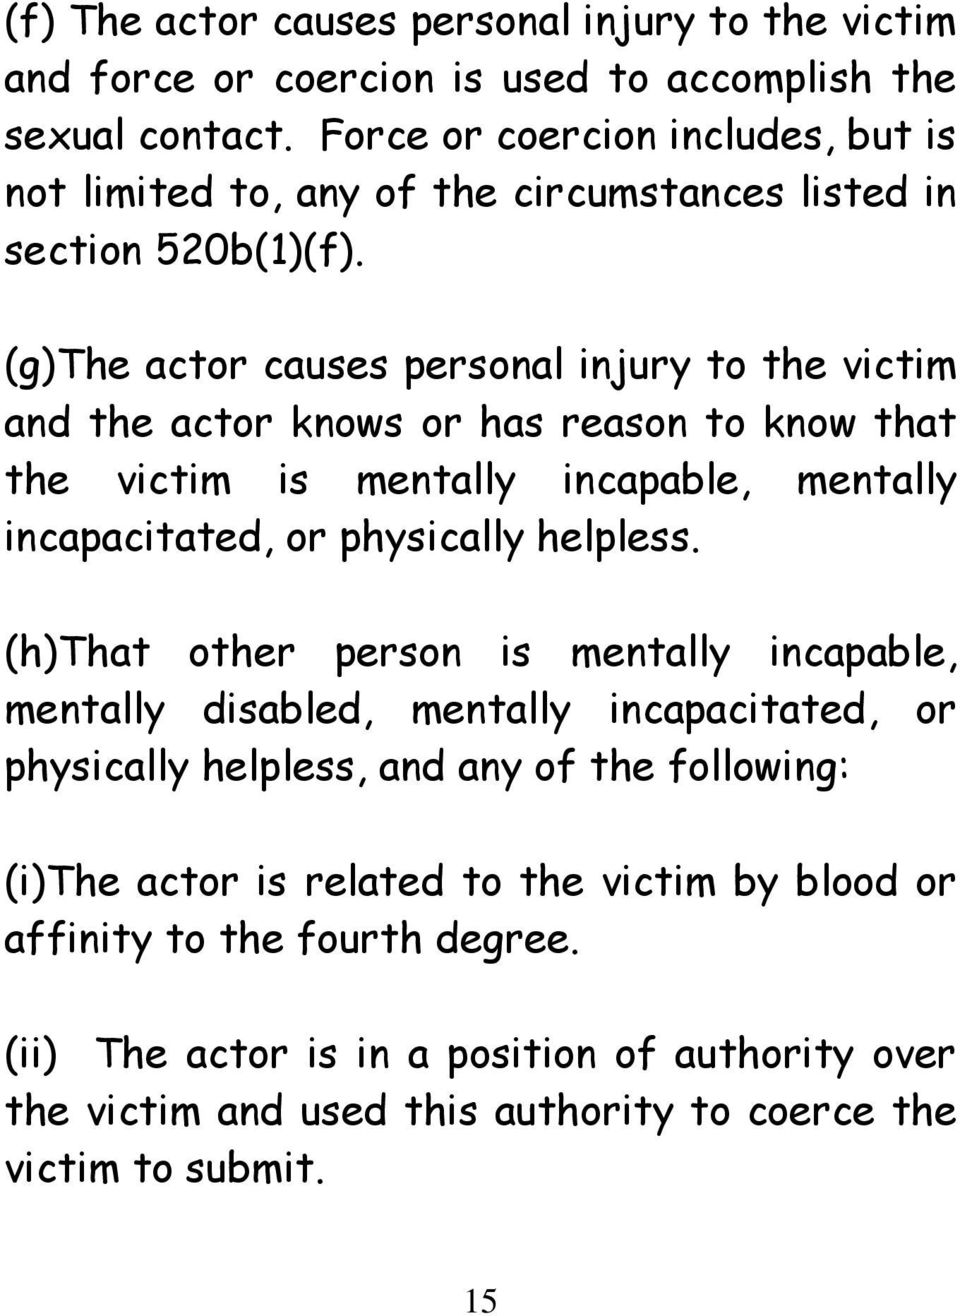 (g)the actor causes personal injury to the victim and the actor knows or has reason to know that the victim is mentally incapable, mentally incapacitated, or physically helpless.